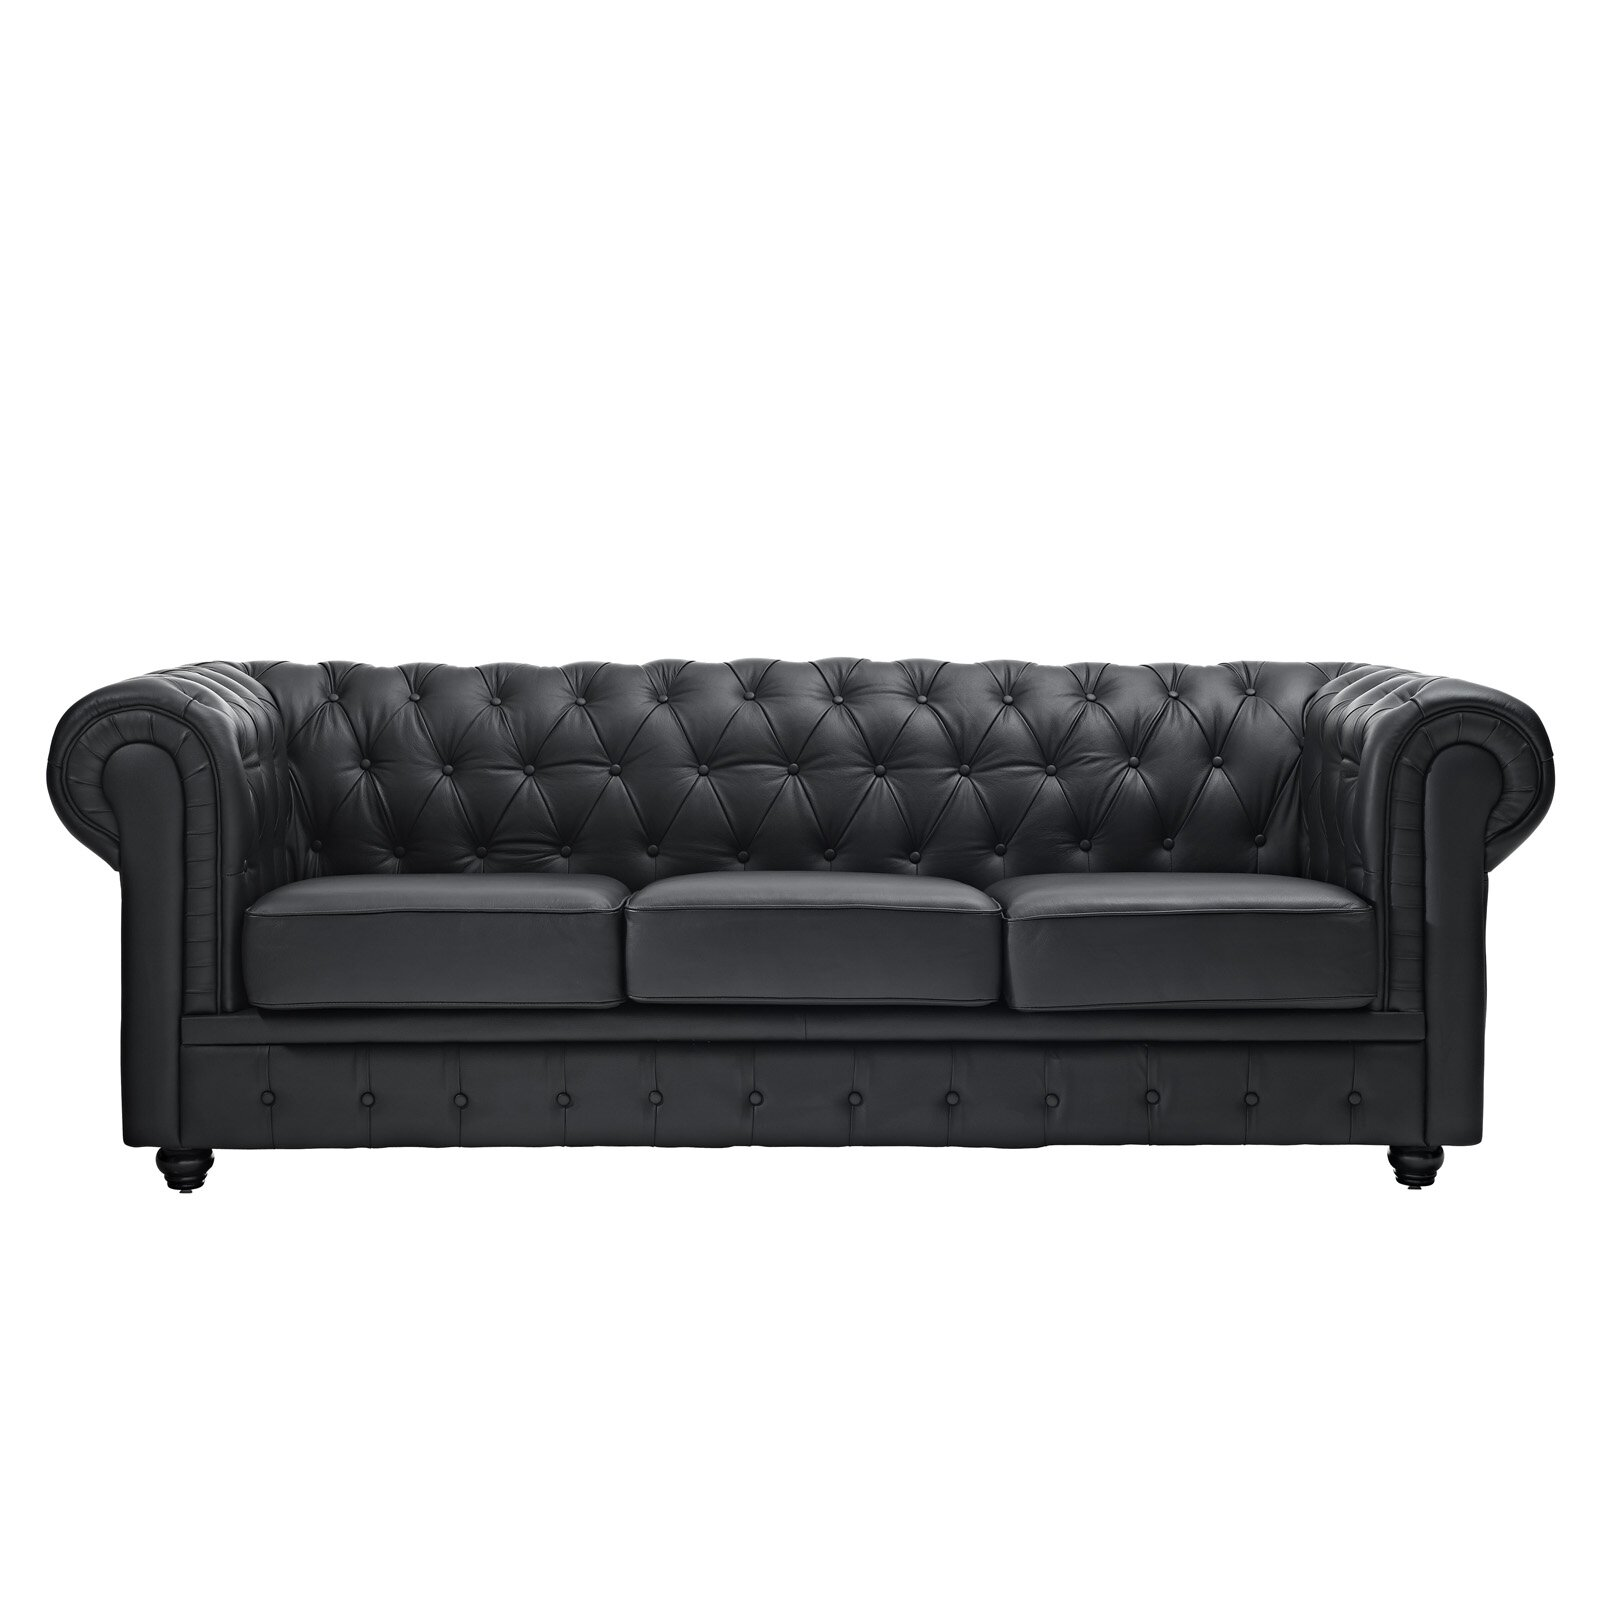 Modway Chesterfield Sofa& Reviews Wayfair